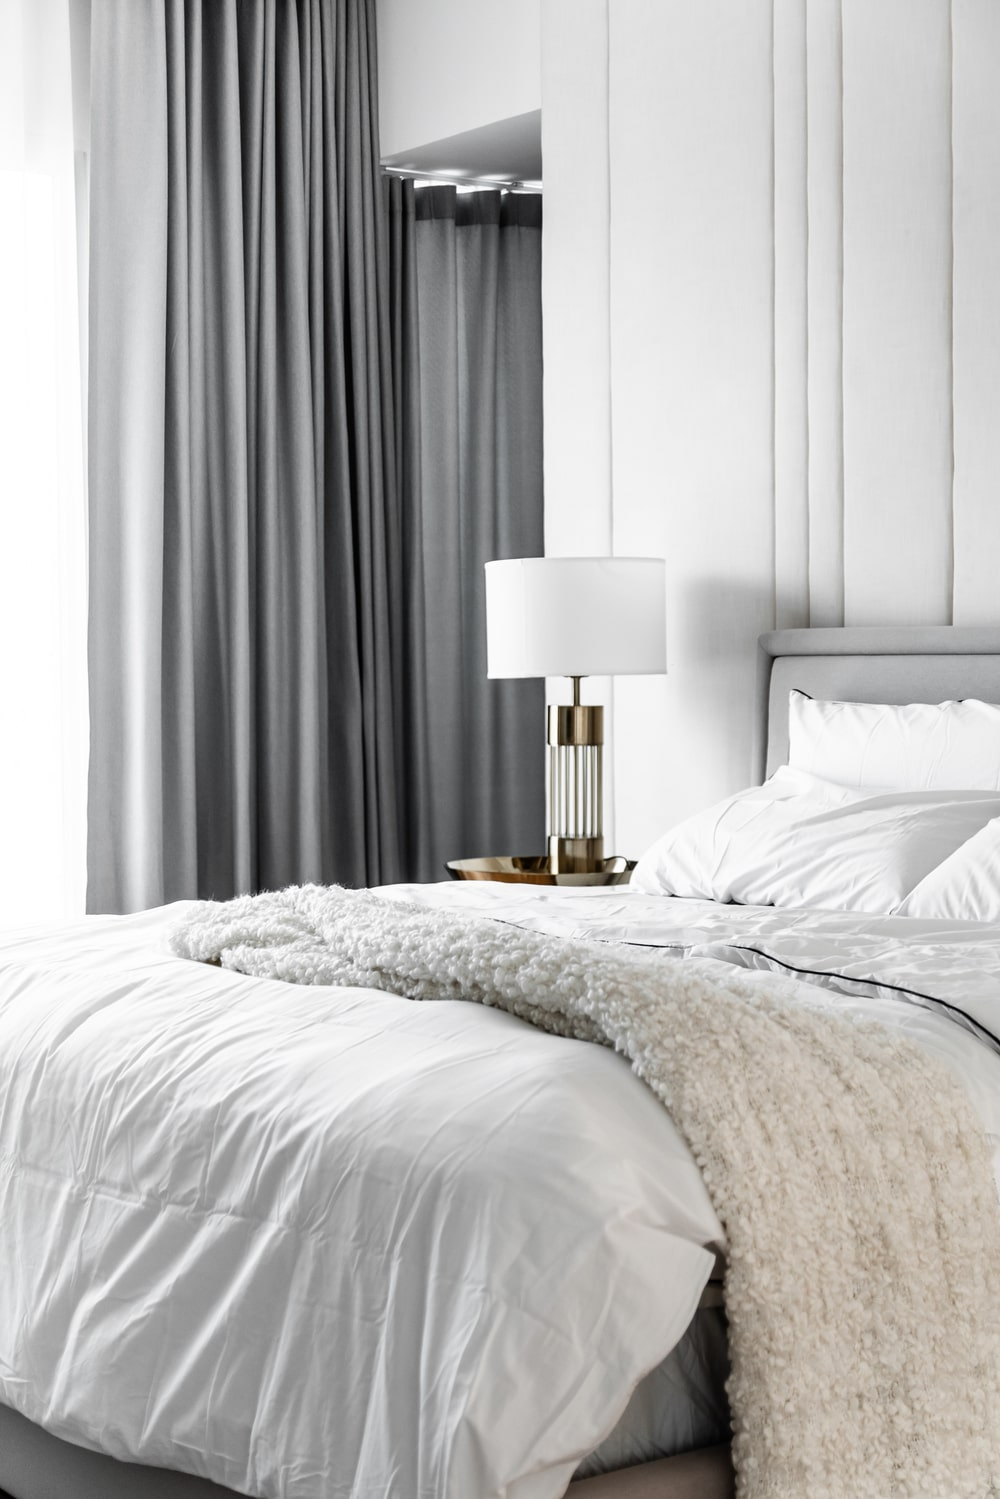 On the other side of the bed, the bedside table supports a table lamp that stands out against the gray curtains.